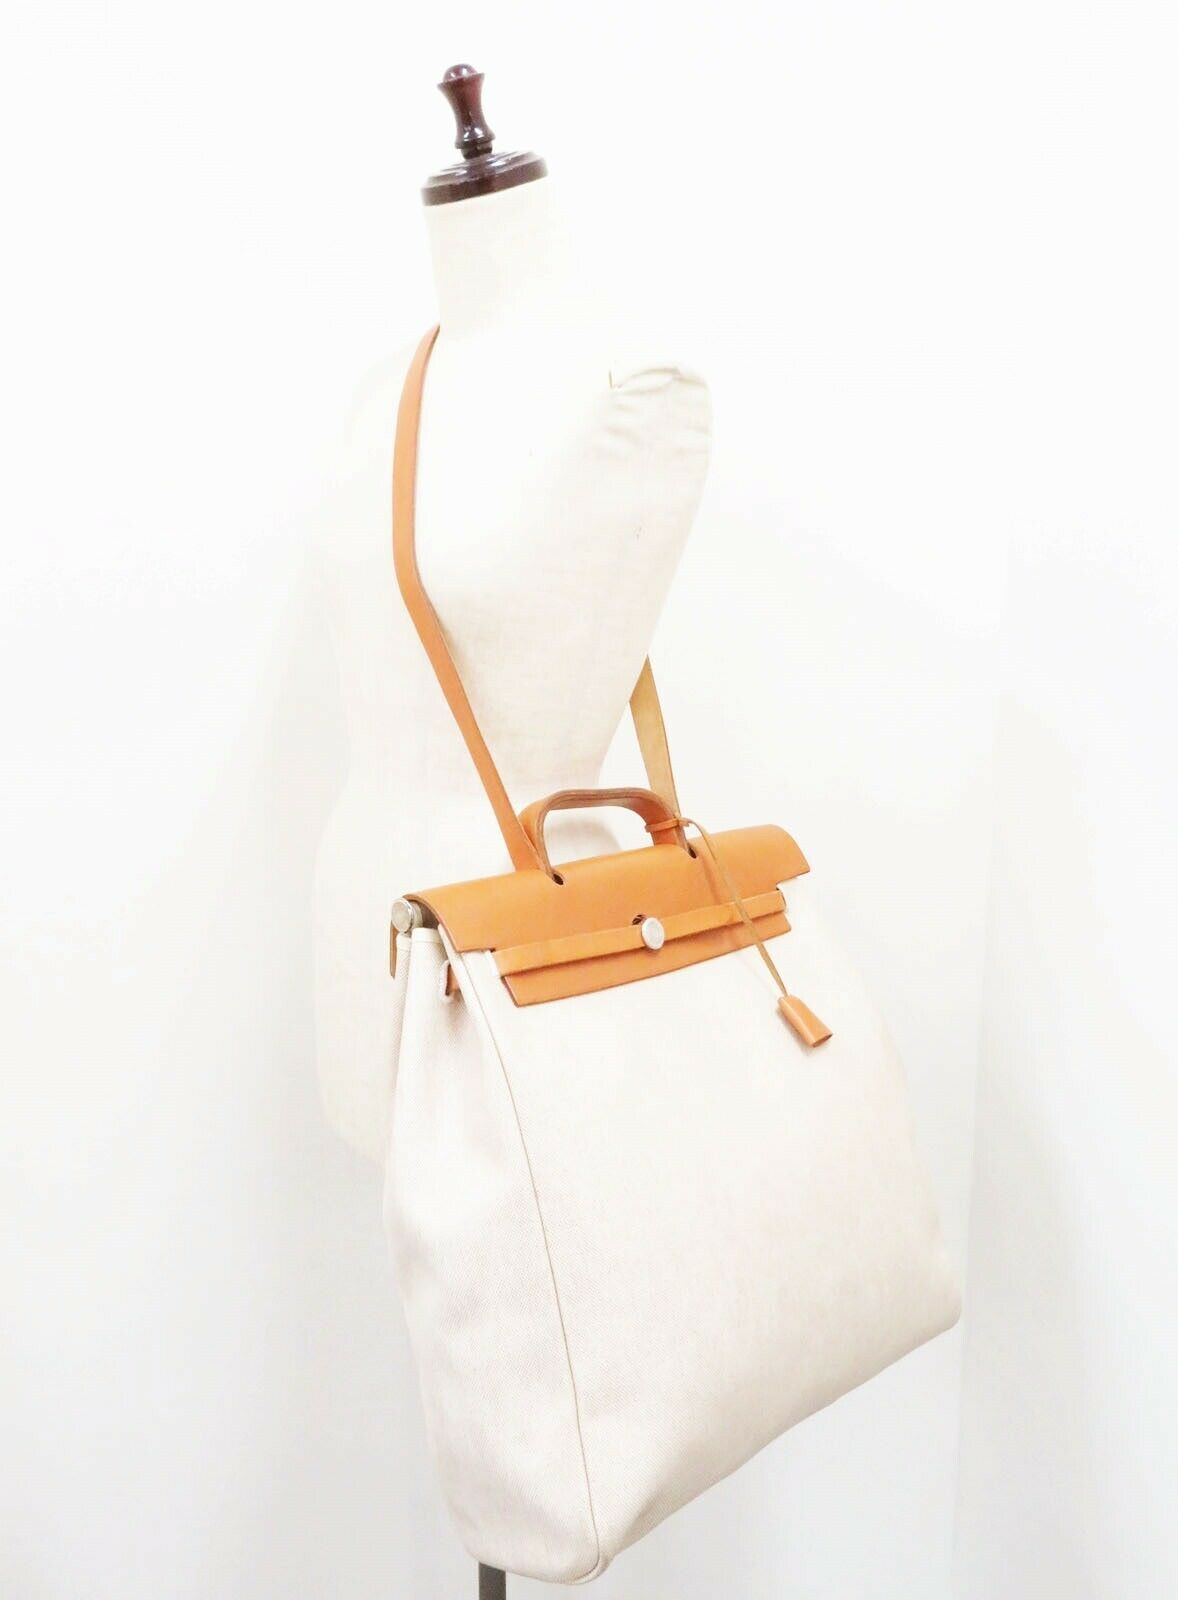 Auth HERMES Her Bag 2 in 1 Beige Canvas and Leather Hand Shoulder Bag #26110 image 3